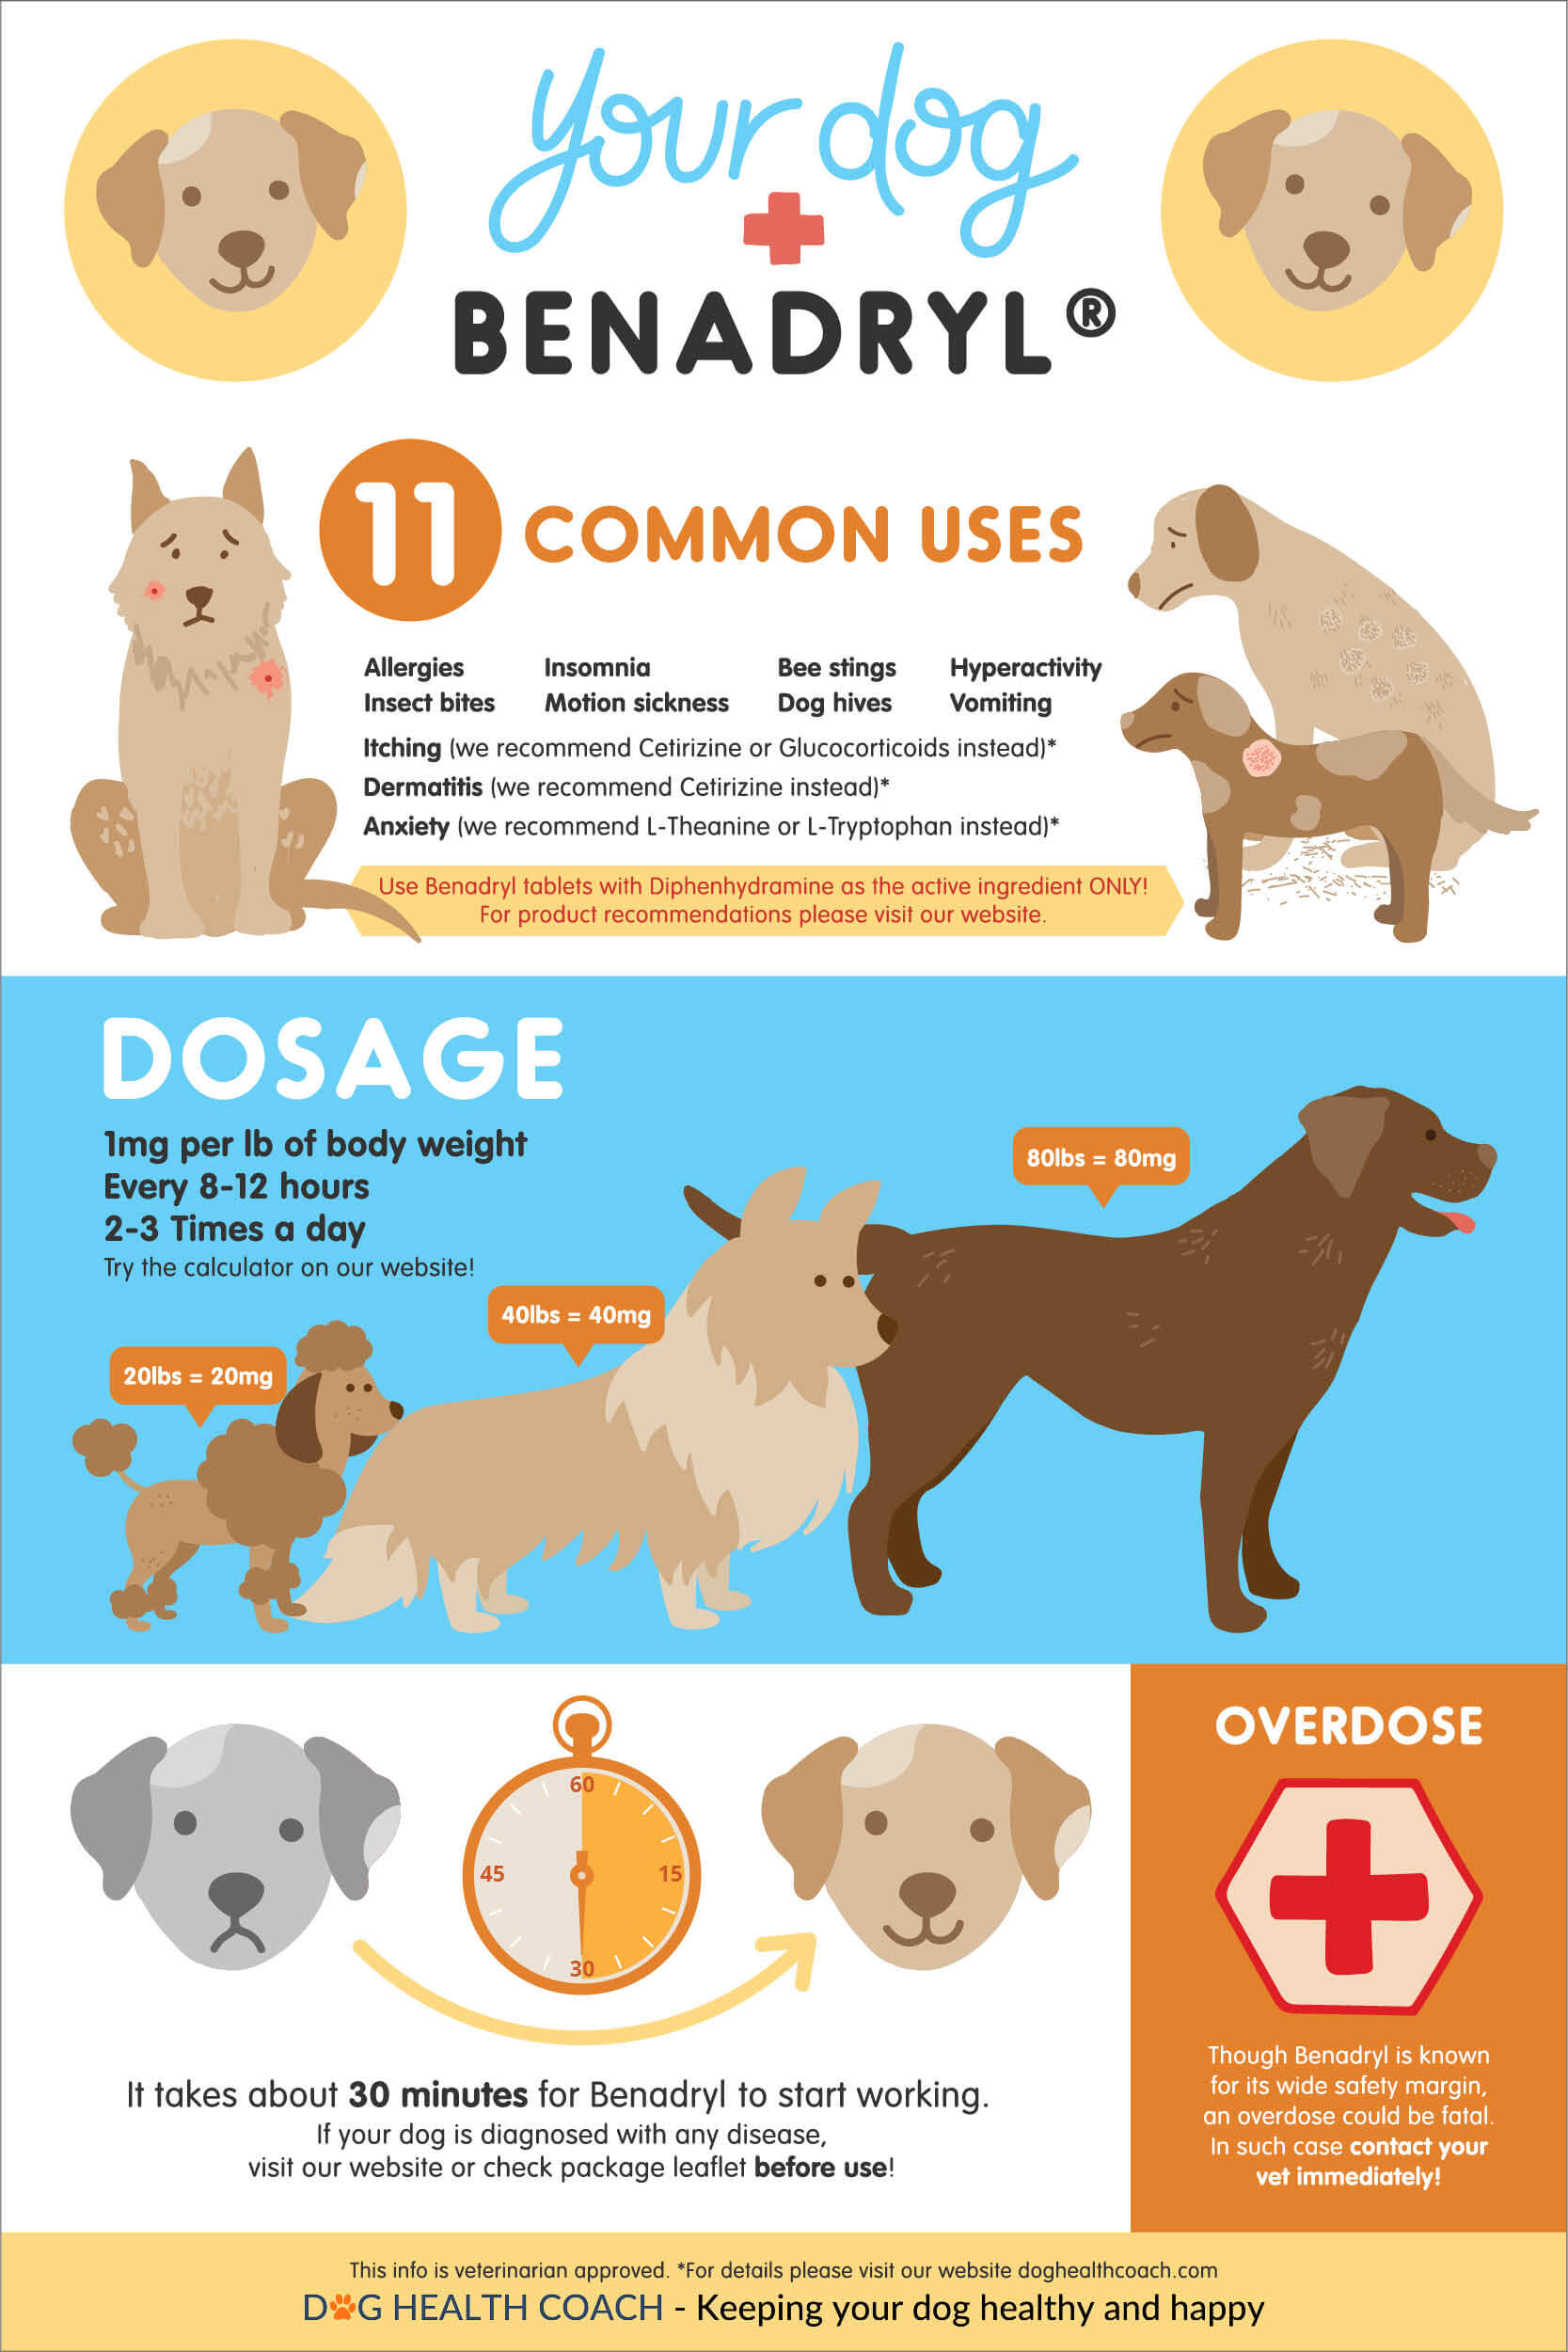 Benadryl For Dogs: Uses, Side Effects, Dosage, Overdose Vet